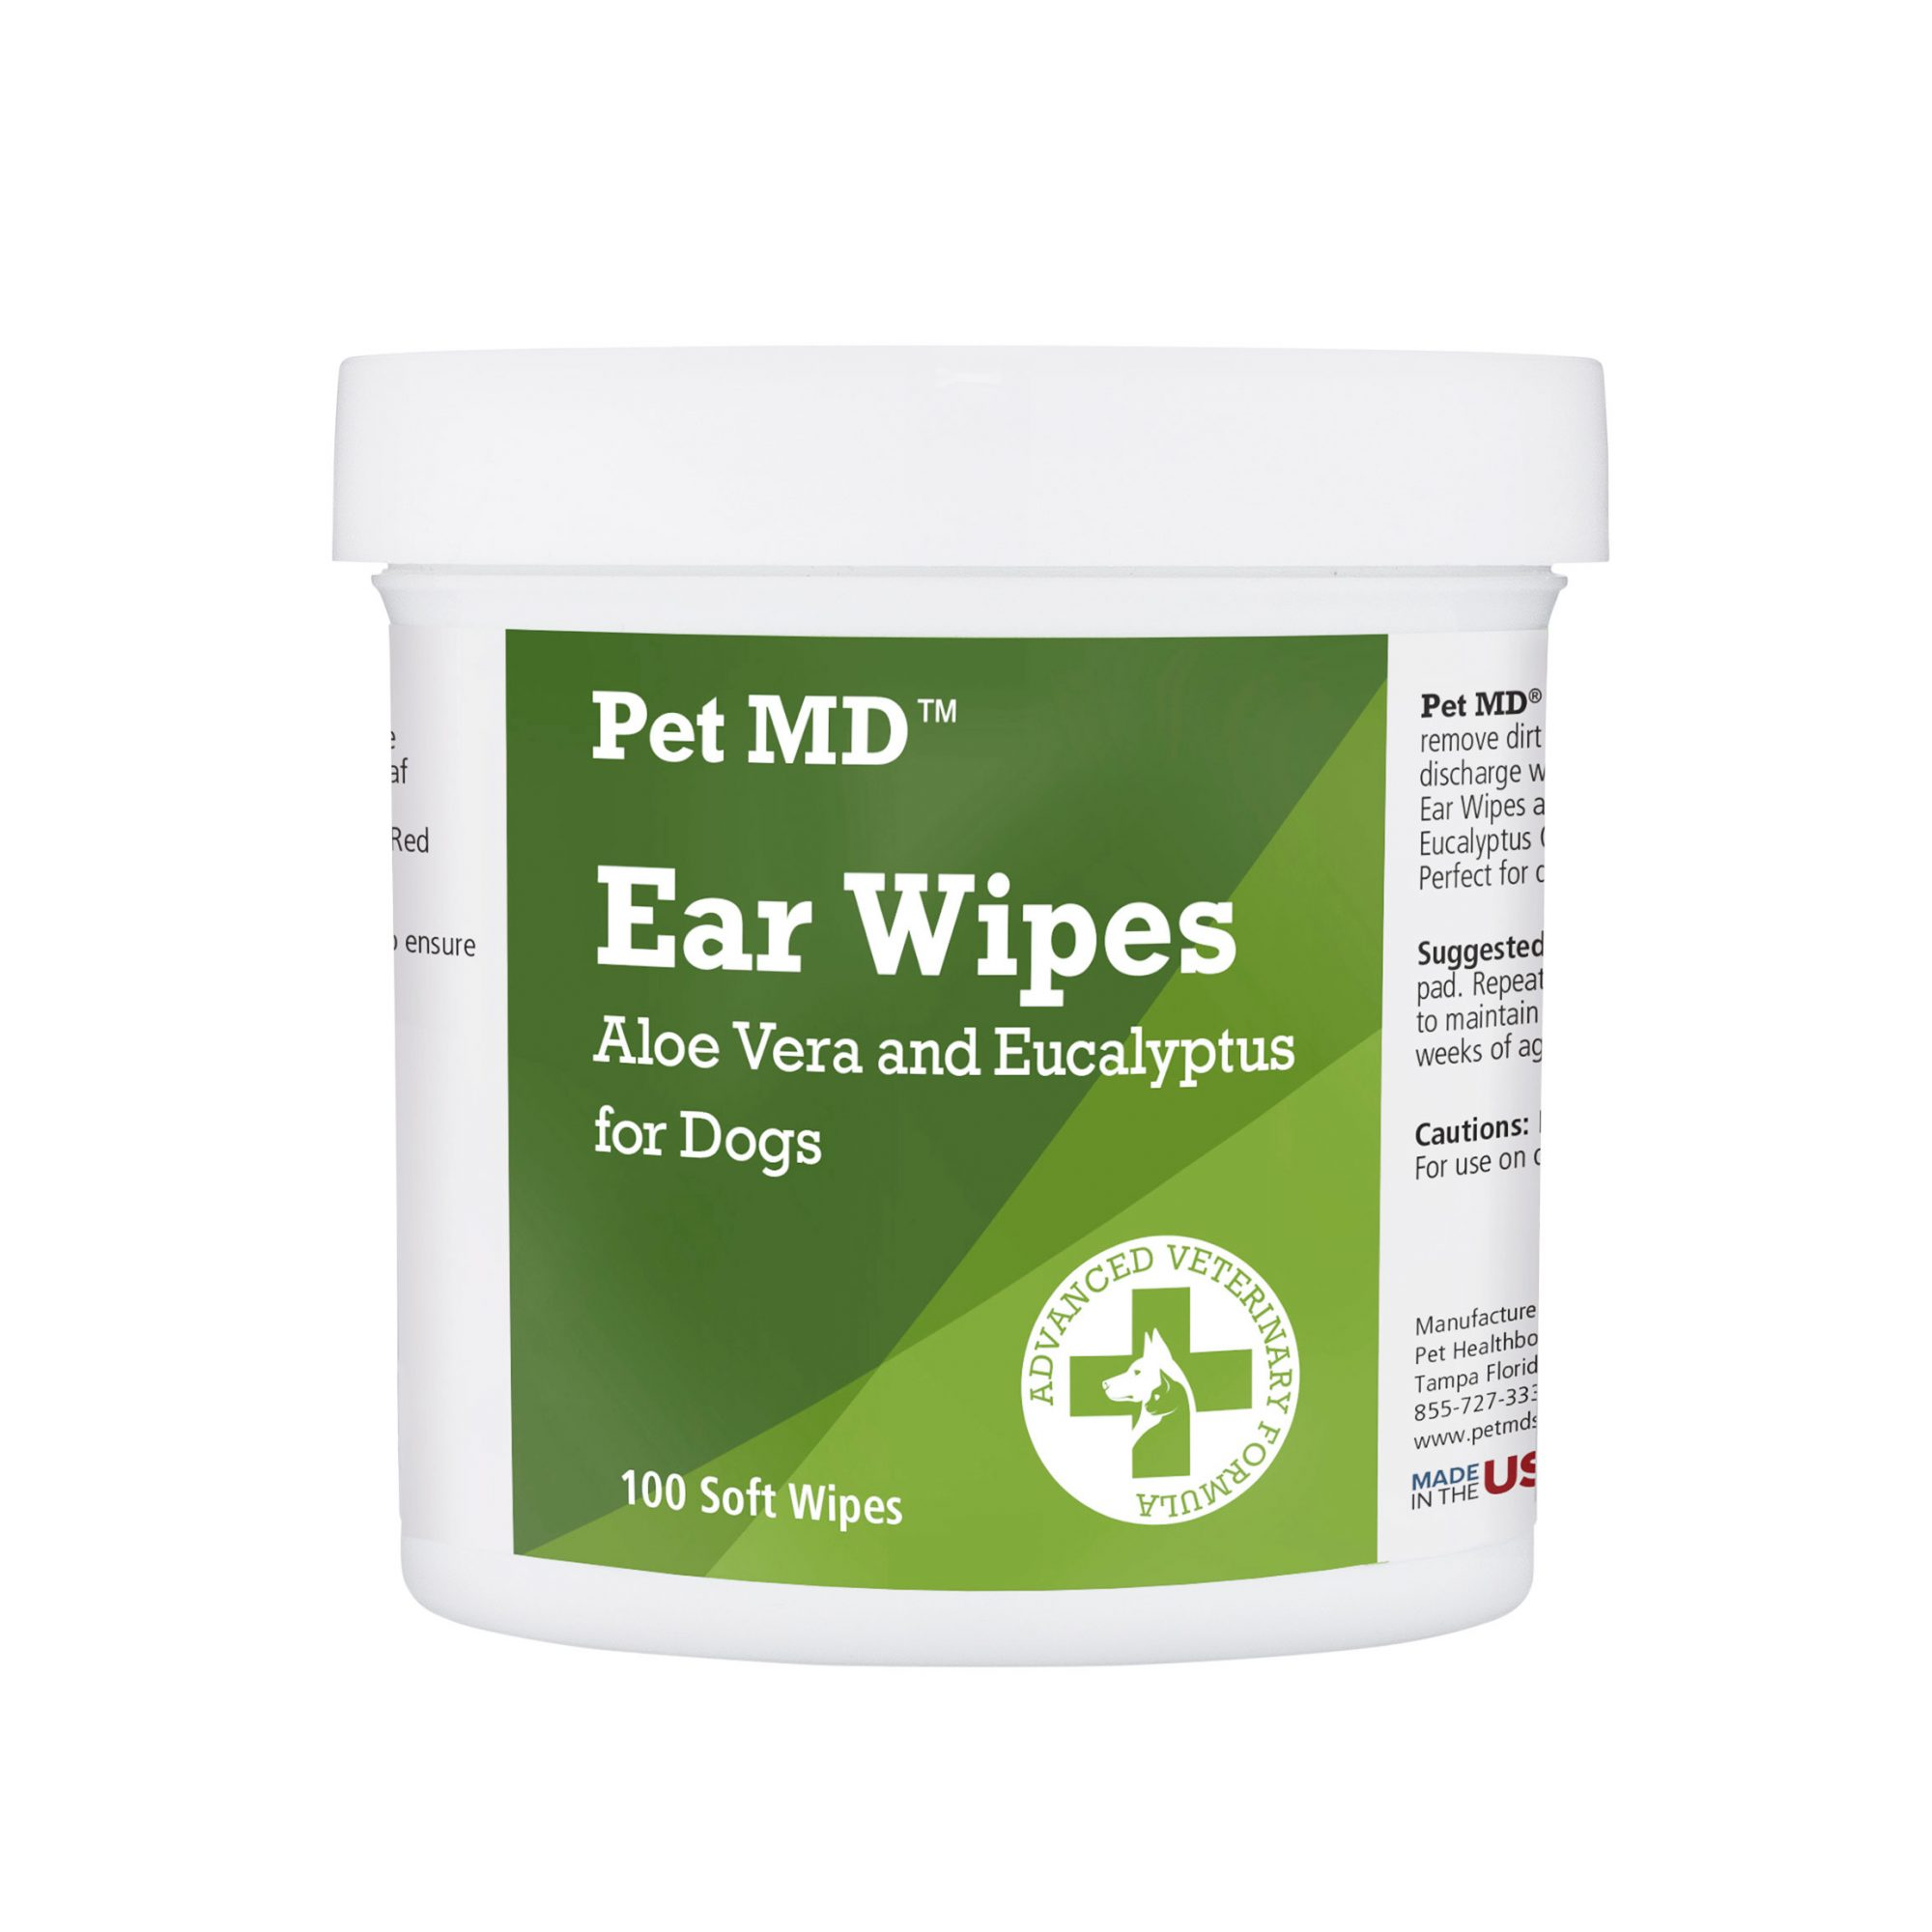 Pet MD Ear Wipes with Aloe Vera and Eucalyptus for Dogs